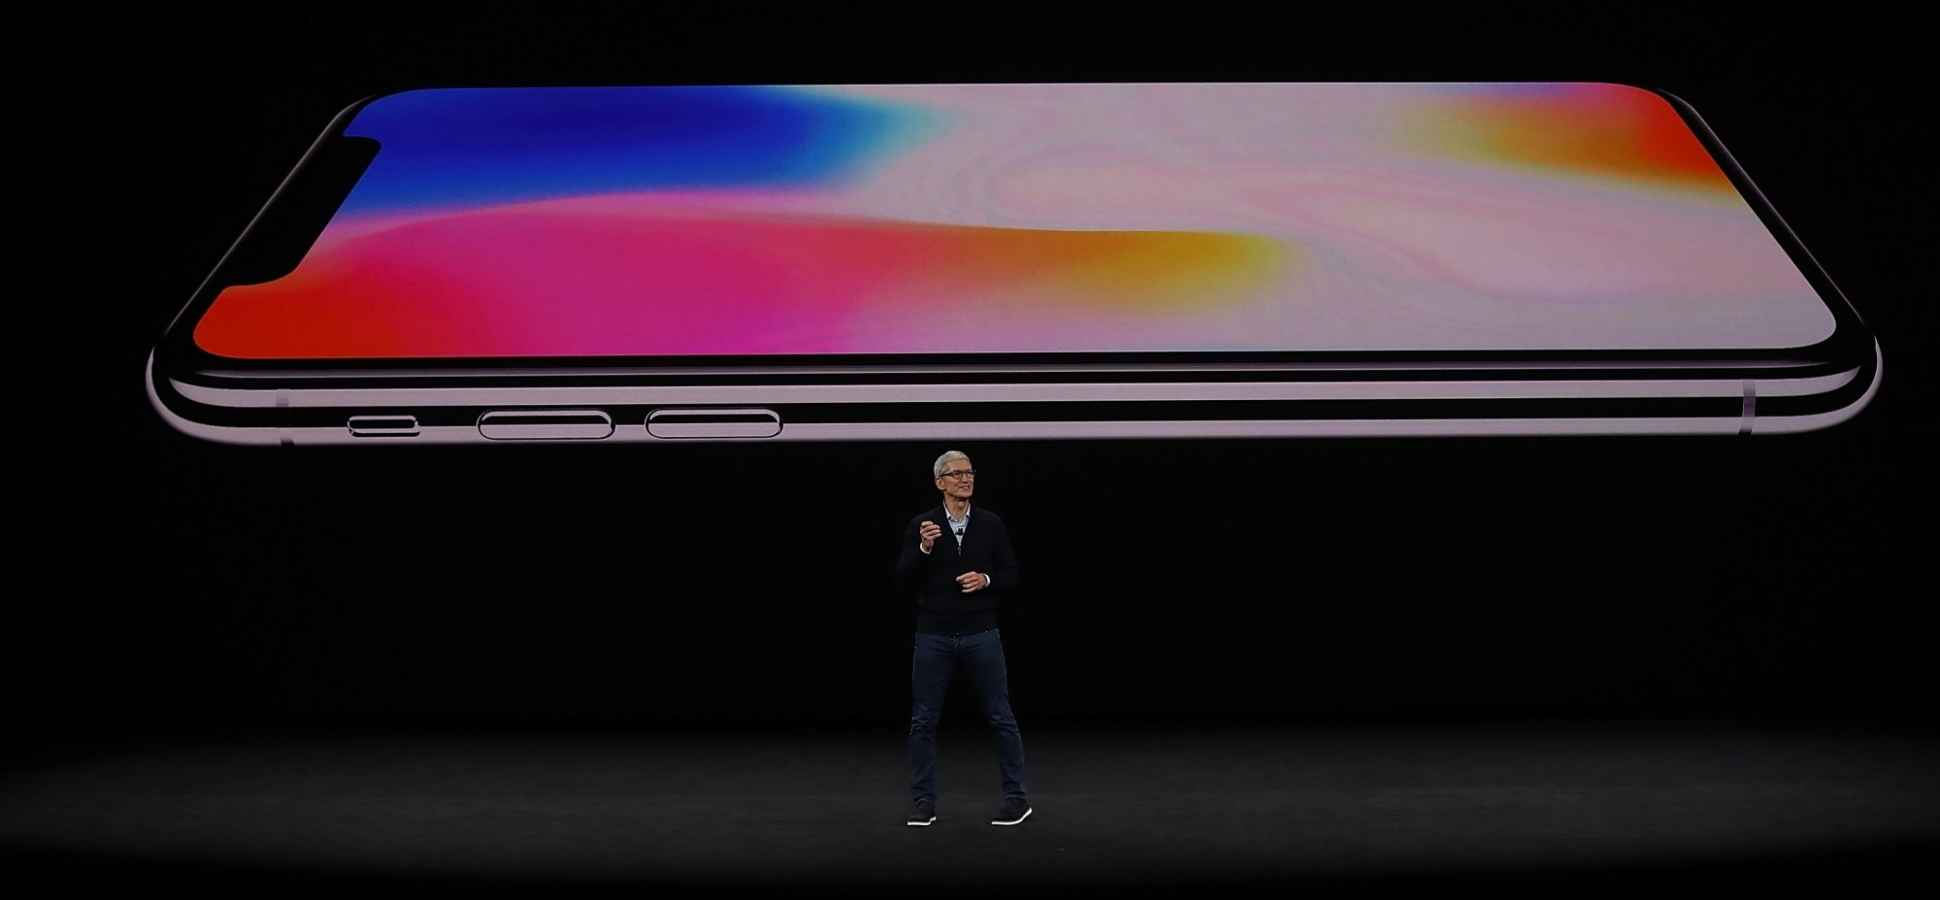 Those Cool New iPhone X Features? Android Phones Had Them